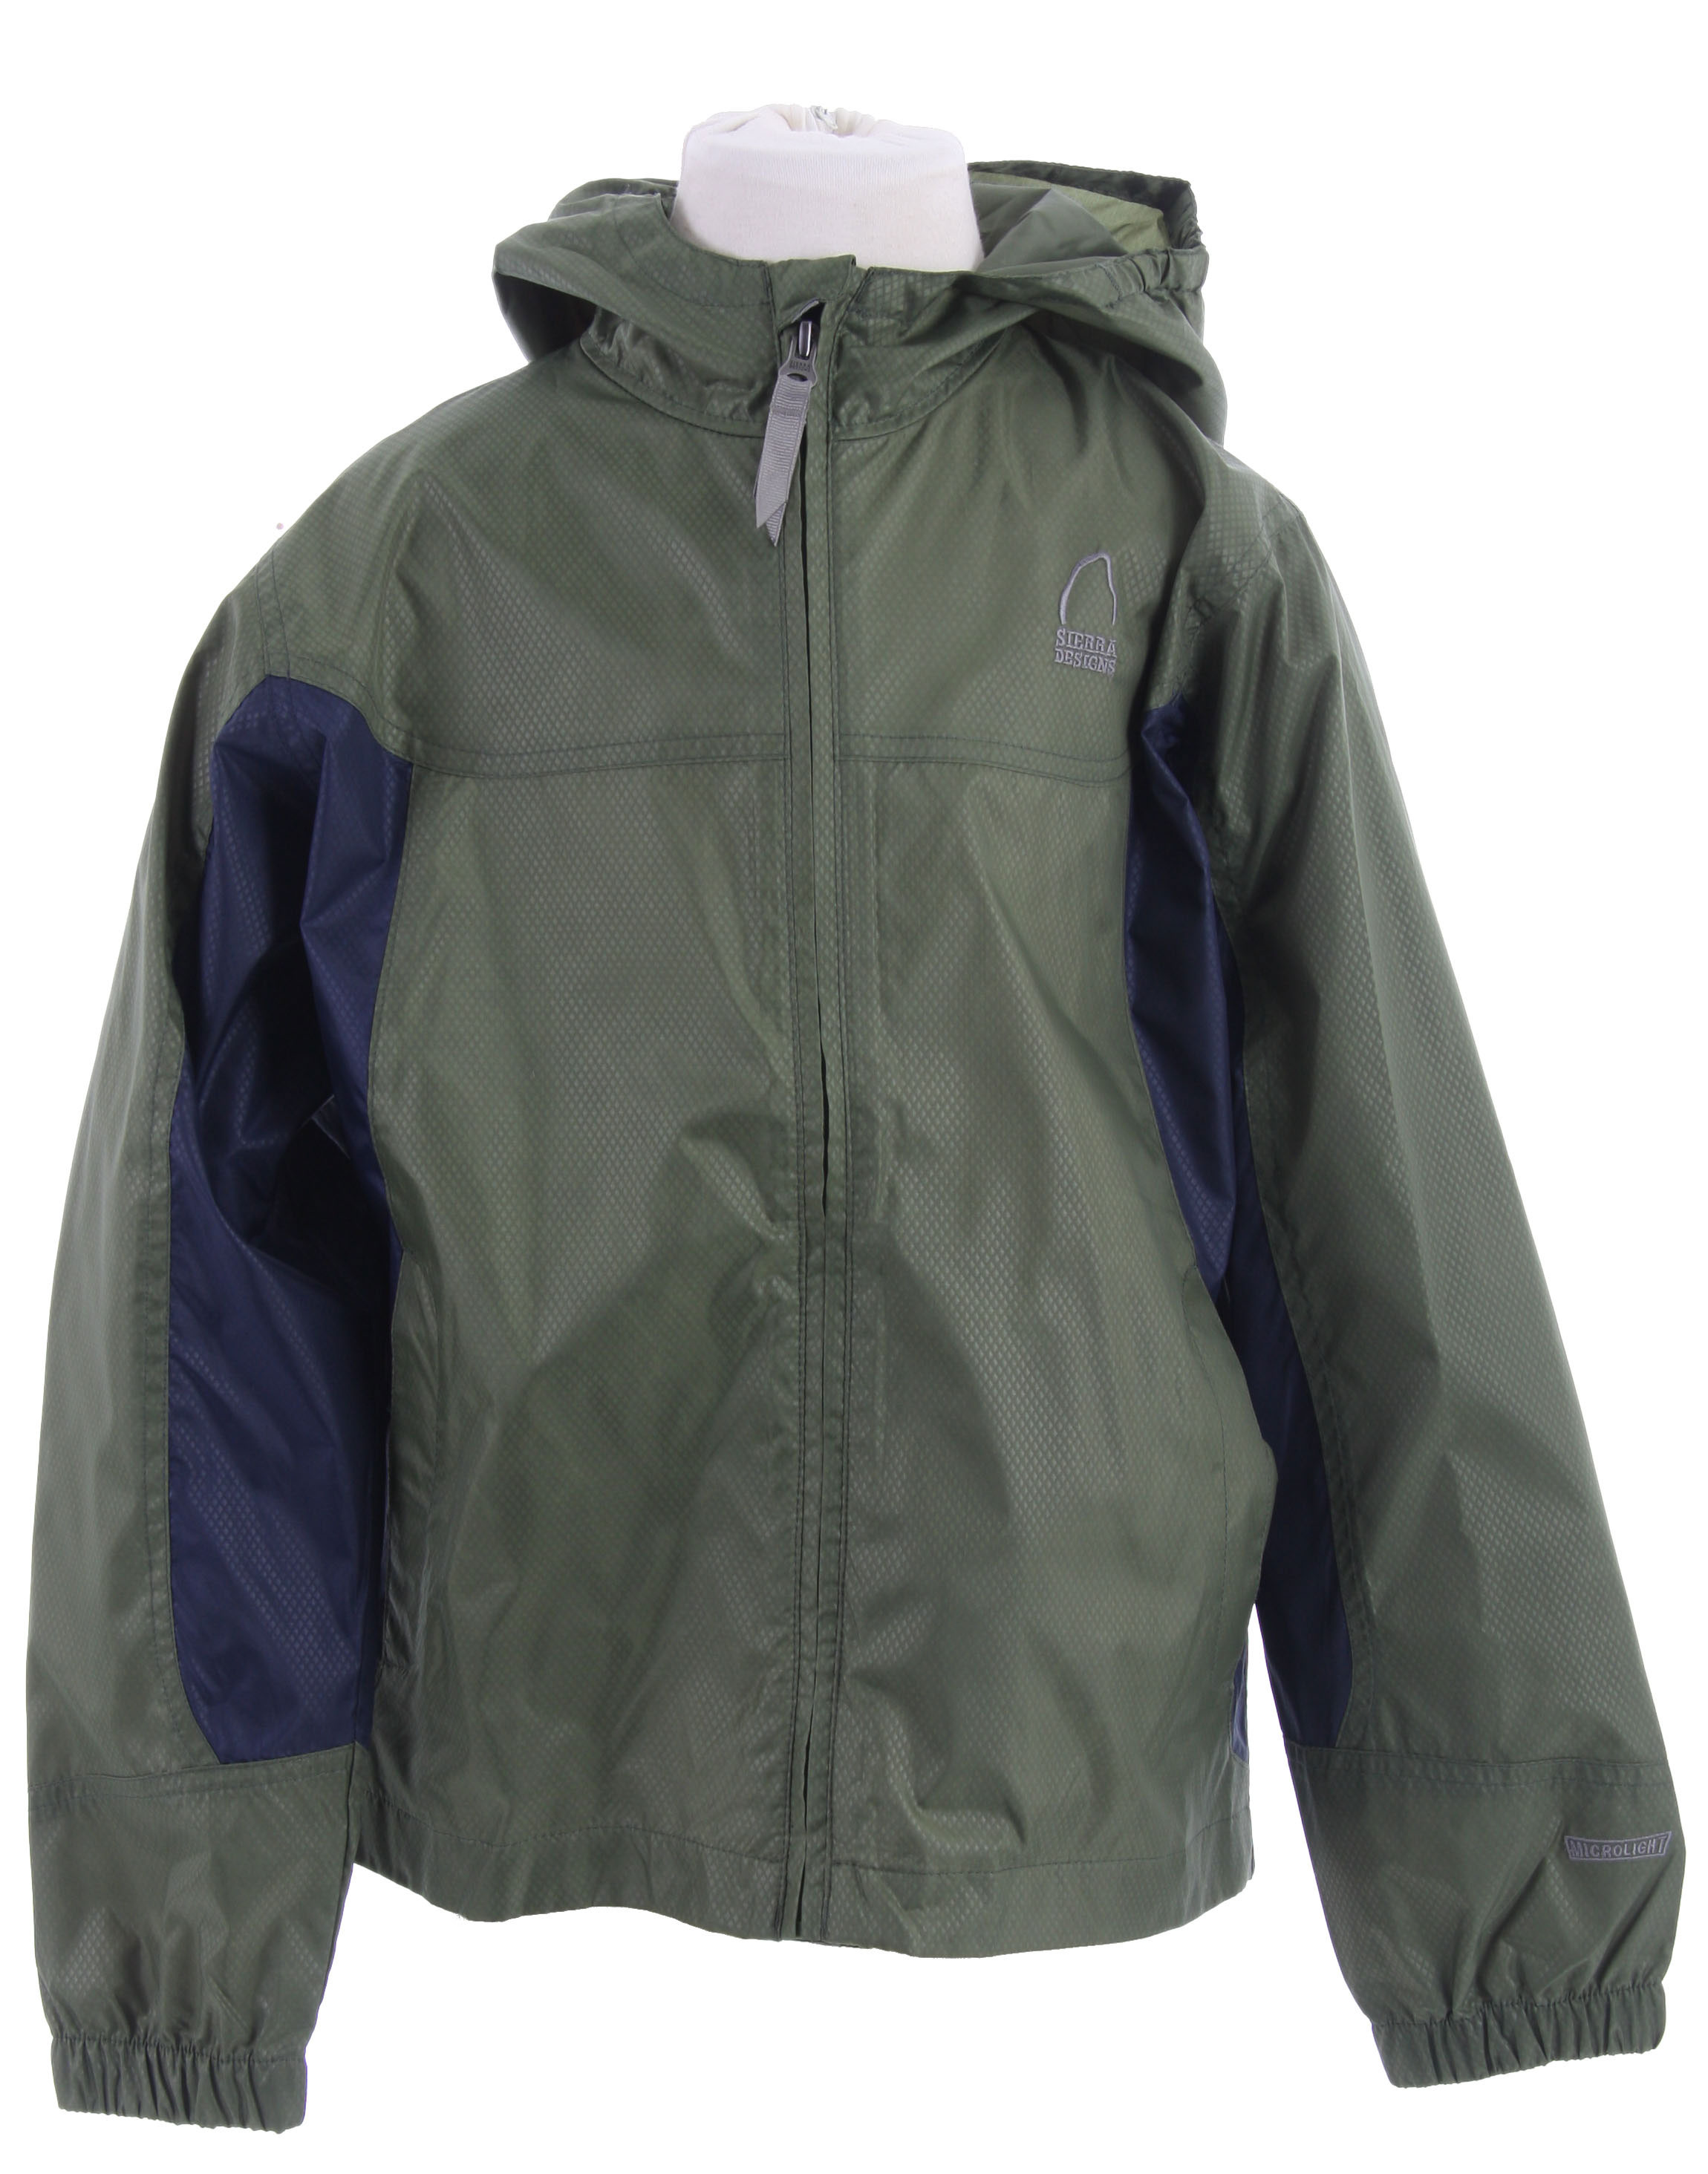 "An unbeatable value, this versatile jacket insulates with a fast wicking, polyester.Key Features of the Sierra Designs Microlight Shell Jacket: Encased Elastic on Each Side of Hood and Hood Has Visor Reverse Coil Center Front Zipper 2 Hand Pockets 1 Zippered Interior Chest Pocket with Earbud Portal Elastic Cuffs Includes Stuff Sack Center Back Length 25"" (L) Weight 6.5 oz Microlight 800 WP 100% Polyester Embossed Diamond 75D 3.04 oz/yd; (103 g/sqm) - $20.95"